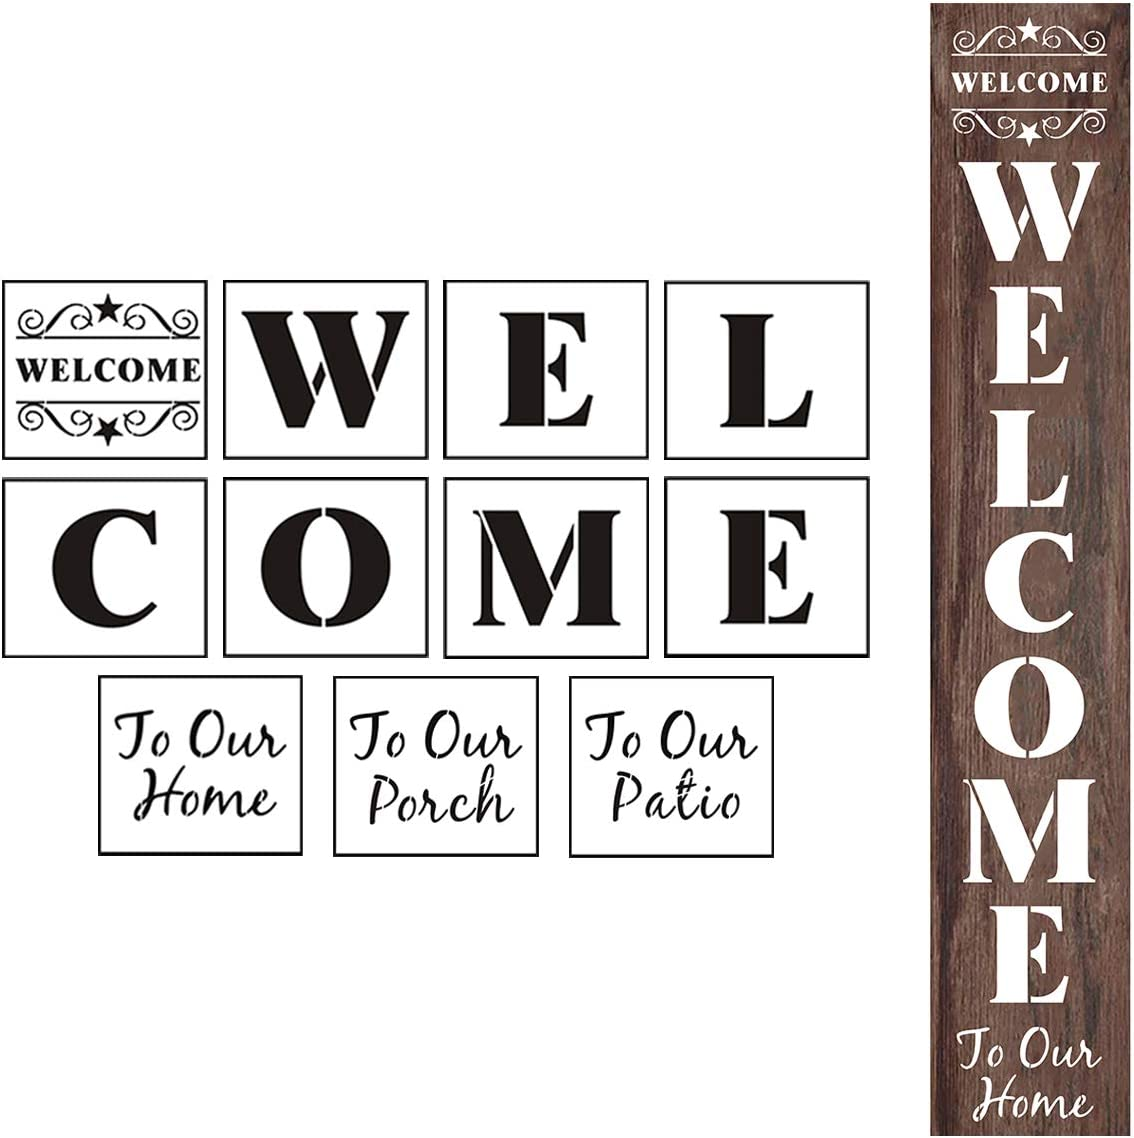 Welcome Stencils for Painting on Wood - 11 Pack Large Vertical Welcome Sign Stencil Templates for Wood Signs, Reusable Letter Stencils for Home, Patio, Porch Signs & Front Door Decorations